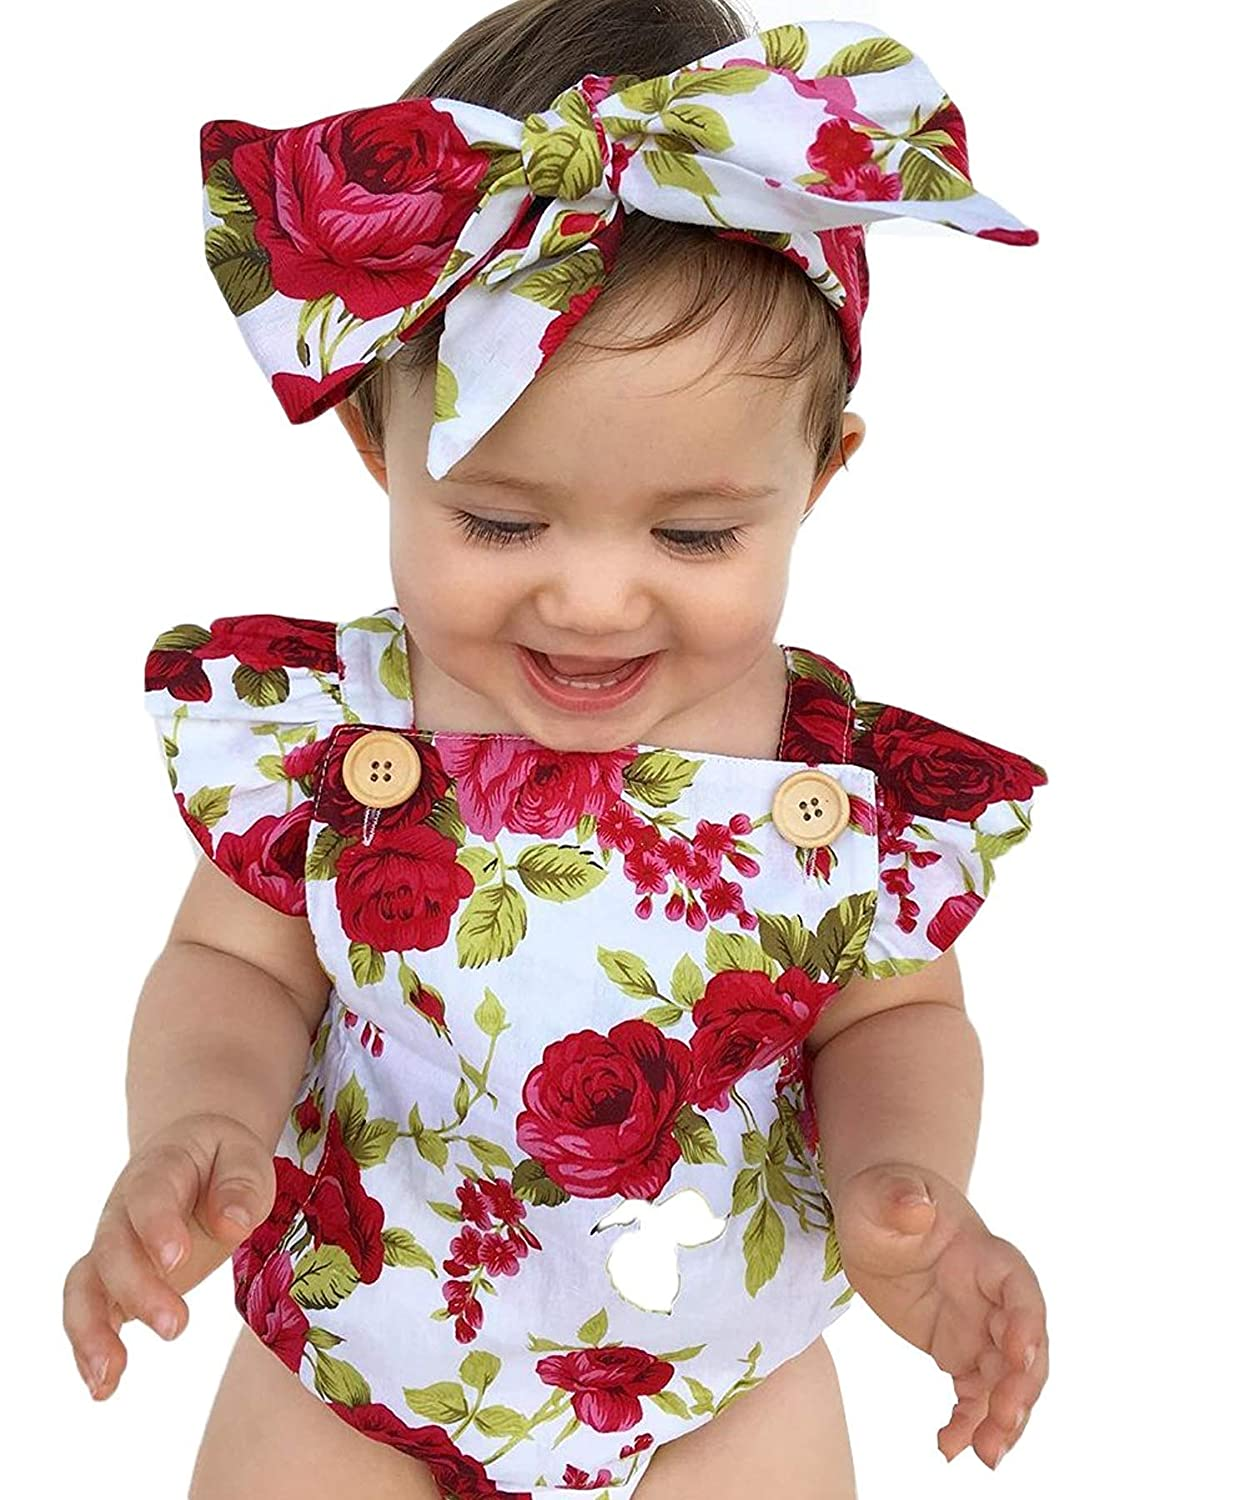 a713d6661acd Amazon.com  Newborn Girl Baby Clothes Floral Ruffles Baby Romper Infant  Toddler Red Rose Outfits Buttons Jumpsuit with Cute Rose Headband  Clothing